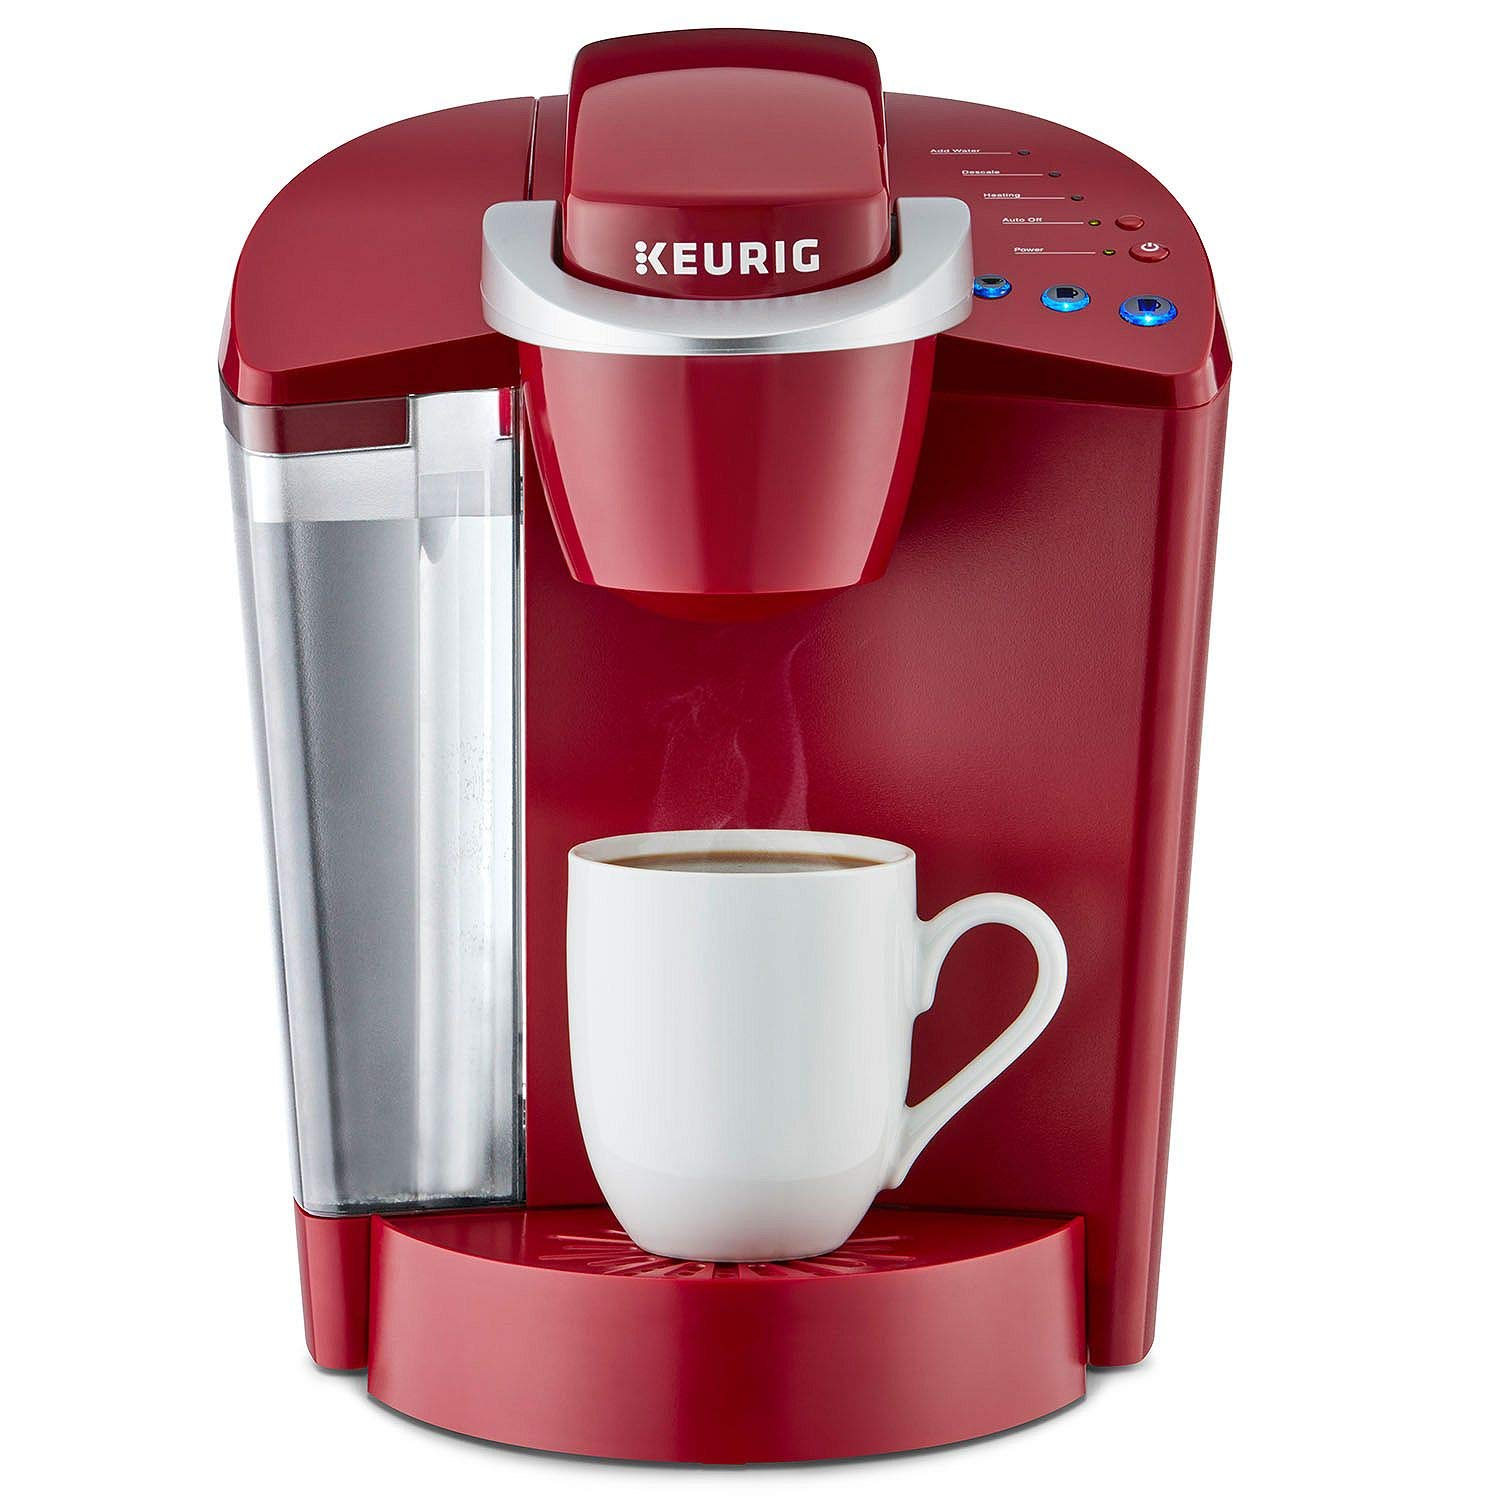 Keurig K50 The All Purposed Coffee Maker (Rhubarb)